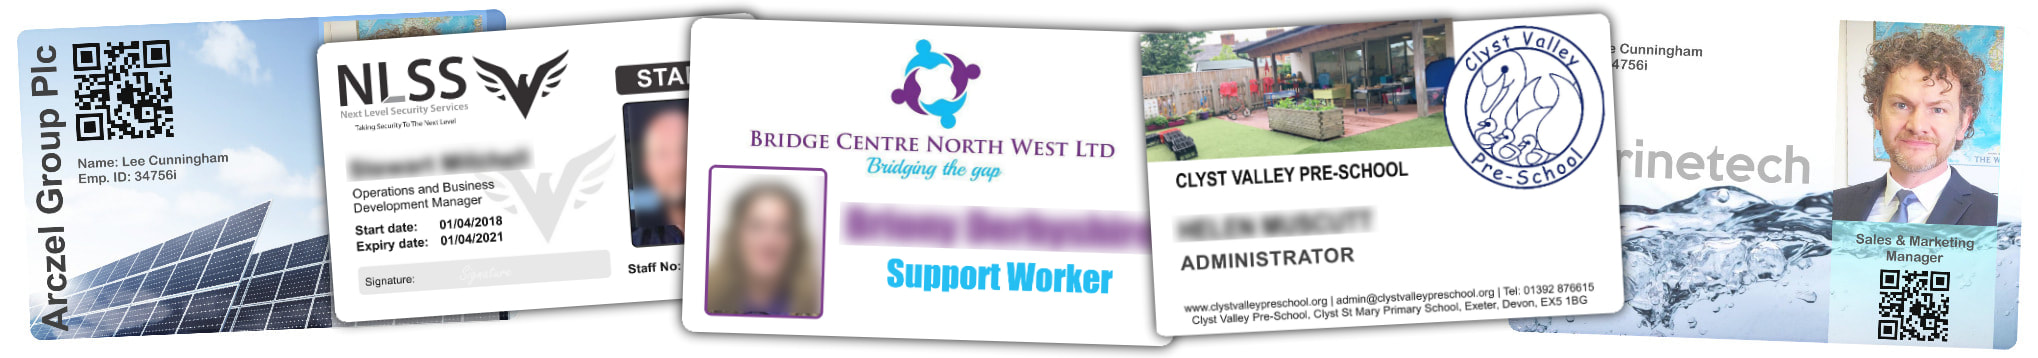 Warrington examples of staff photo ID cards | samples of employee Identity card printing | Workers ID cards printed in